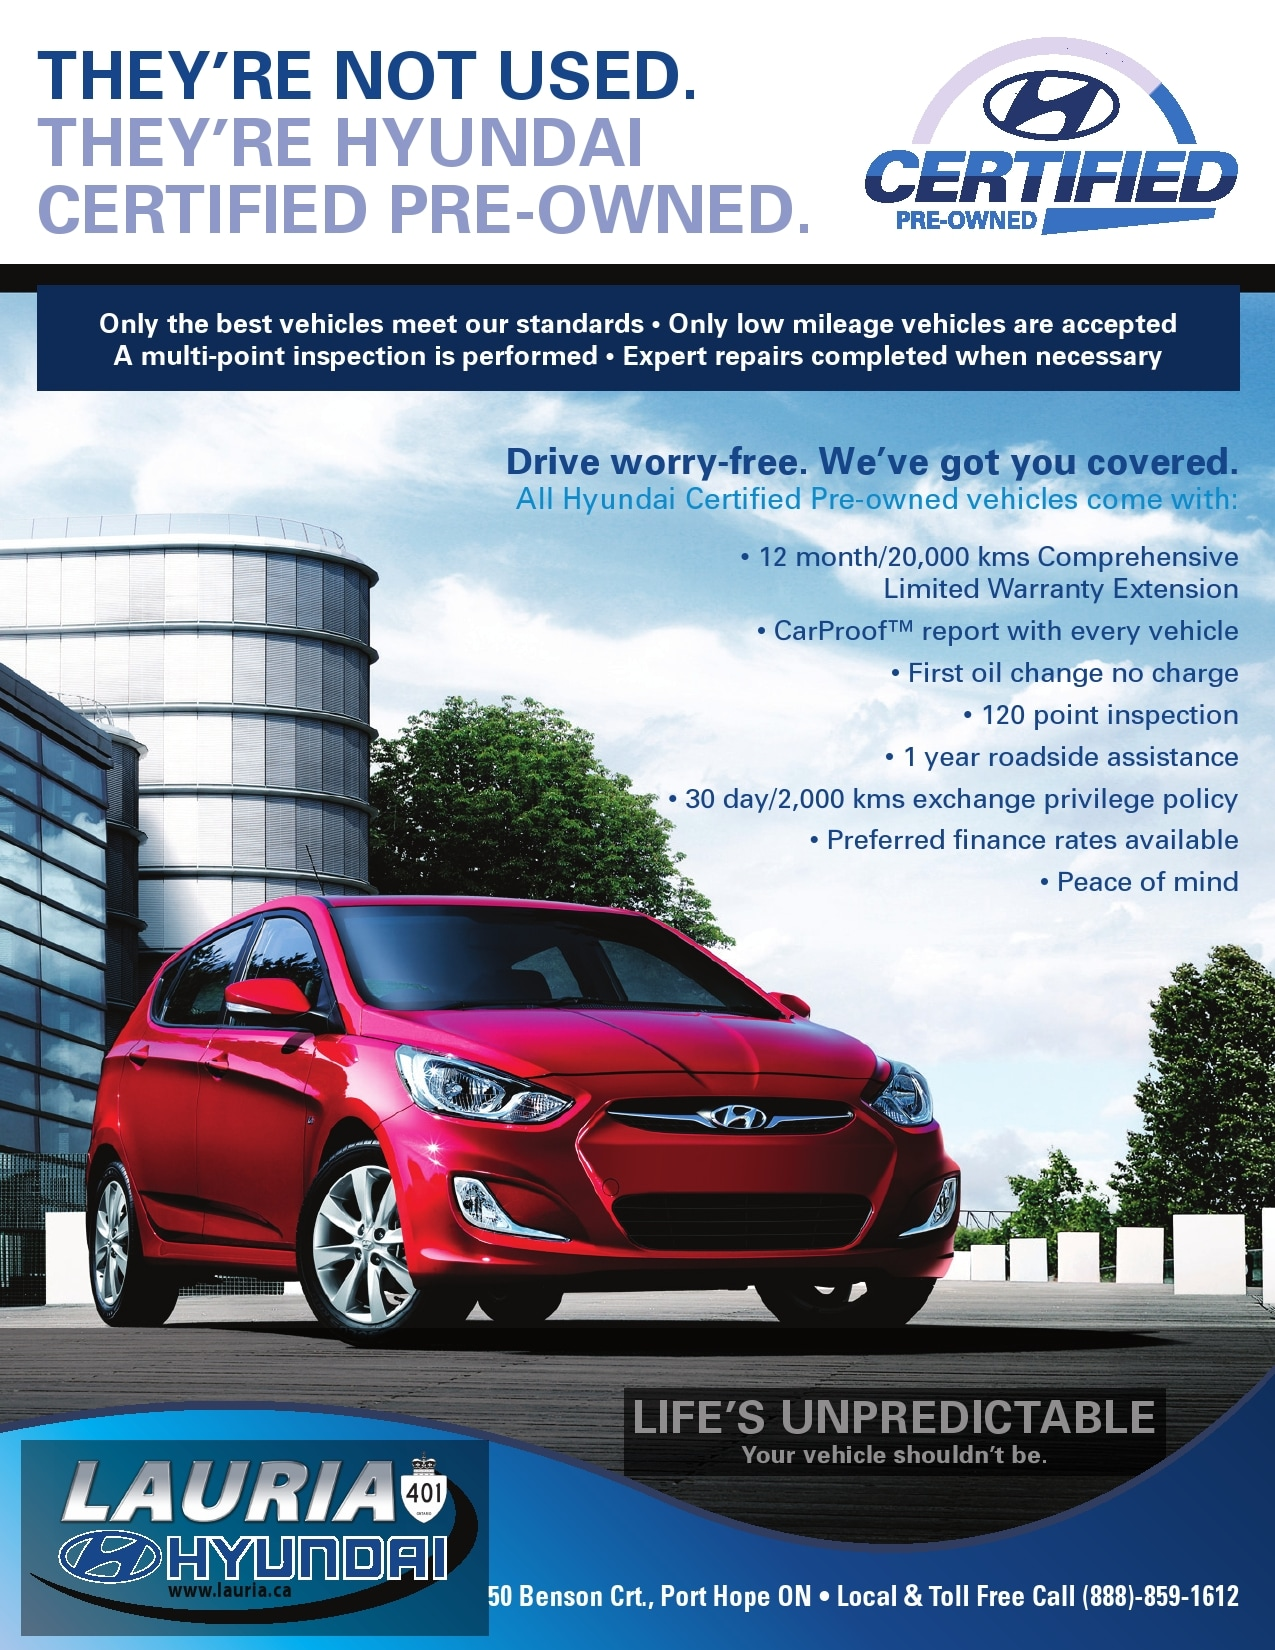 Lauria Hyundai Certified Pre Owned Used Cars in Port Hope